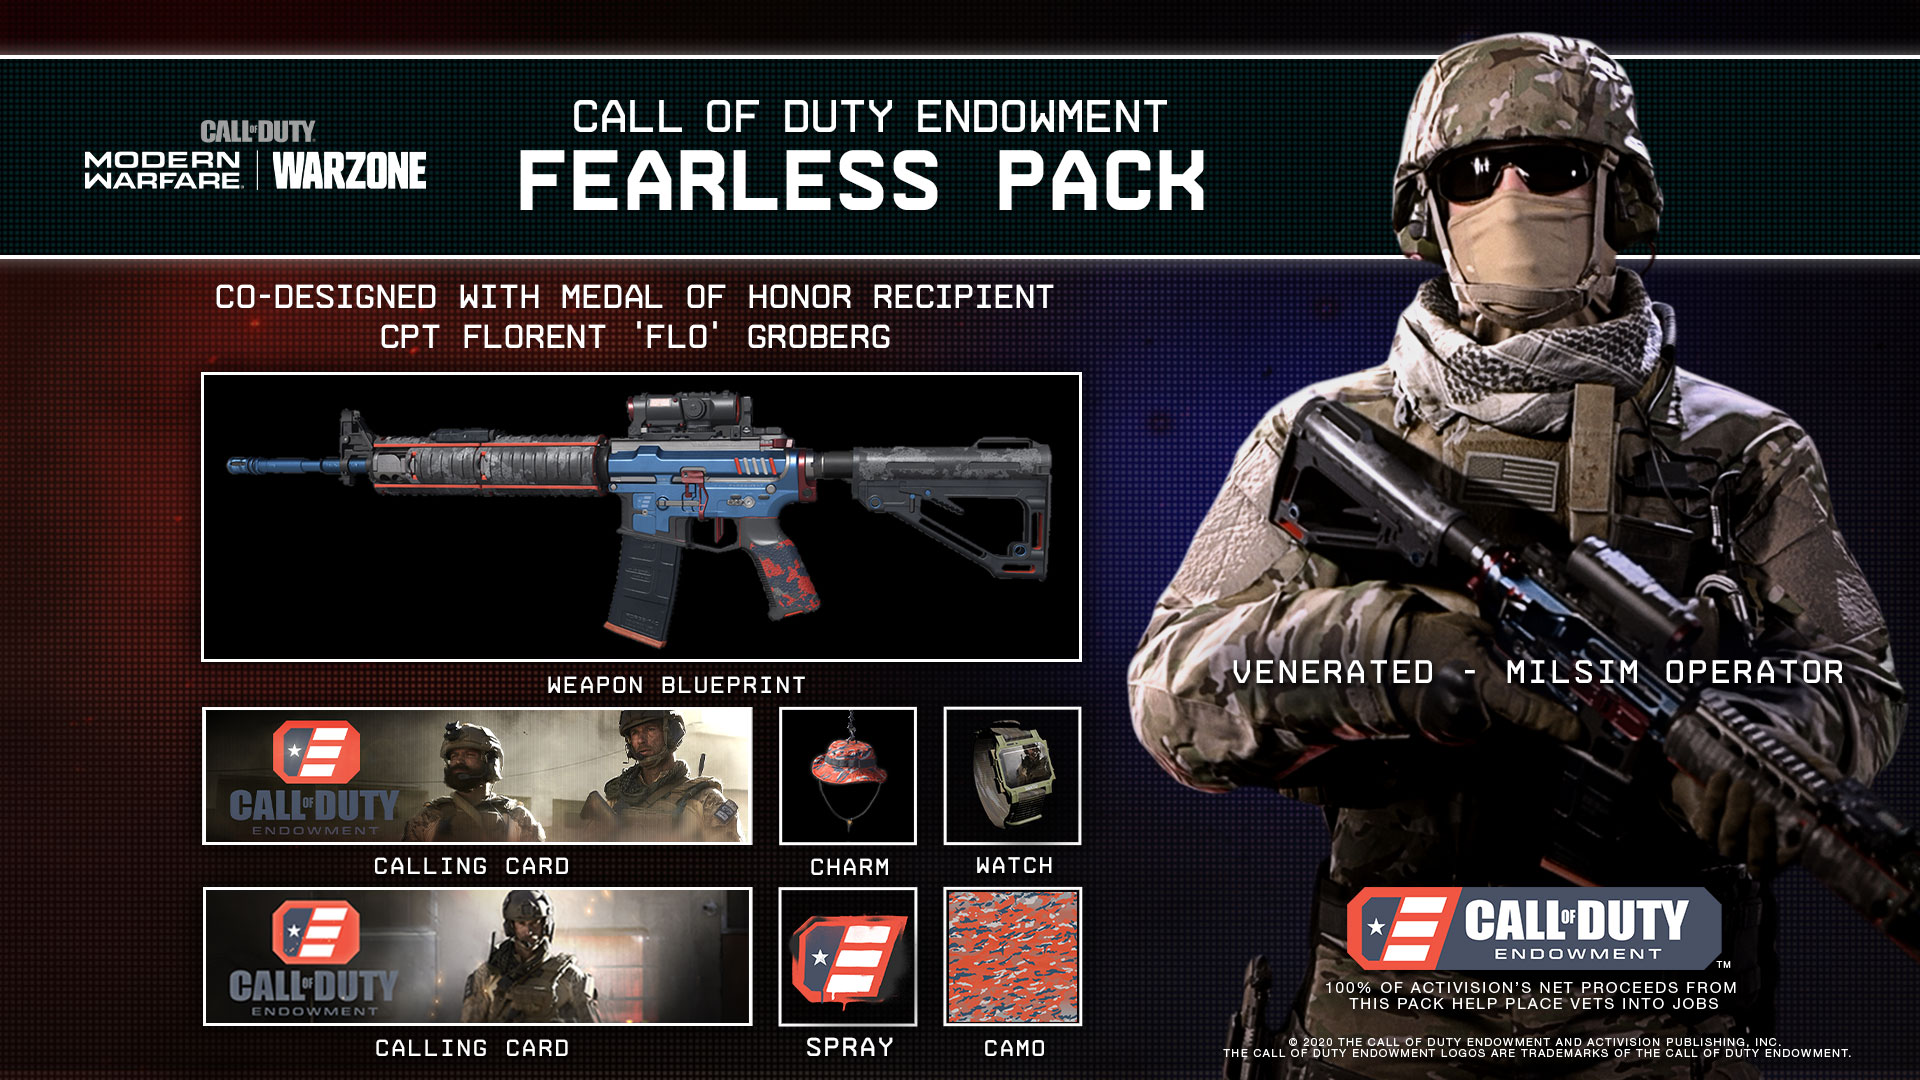 Fearless Pack